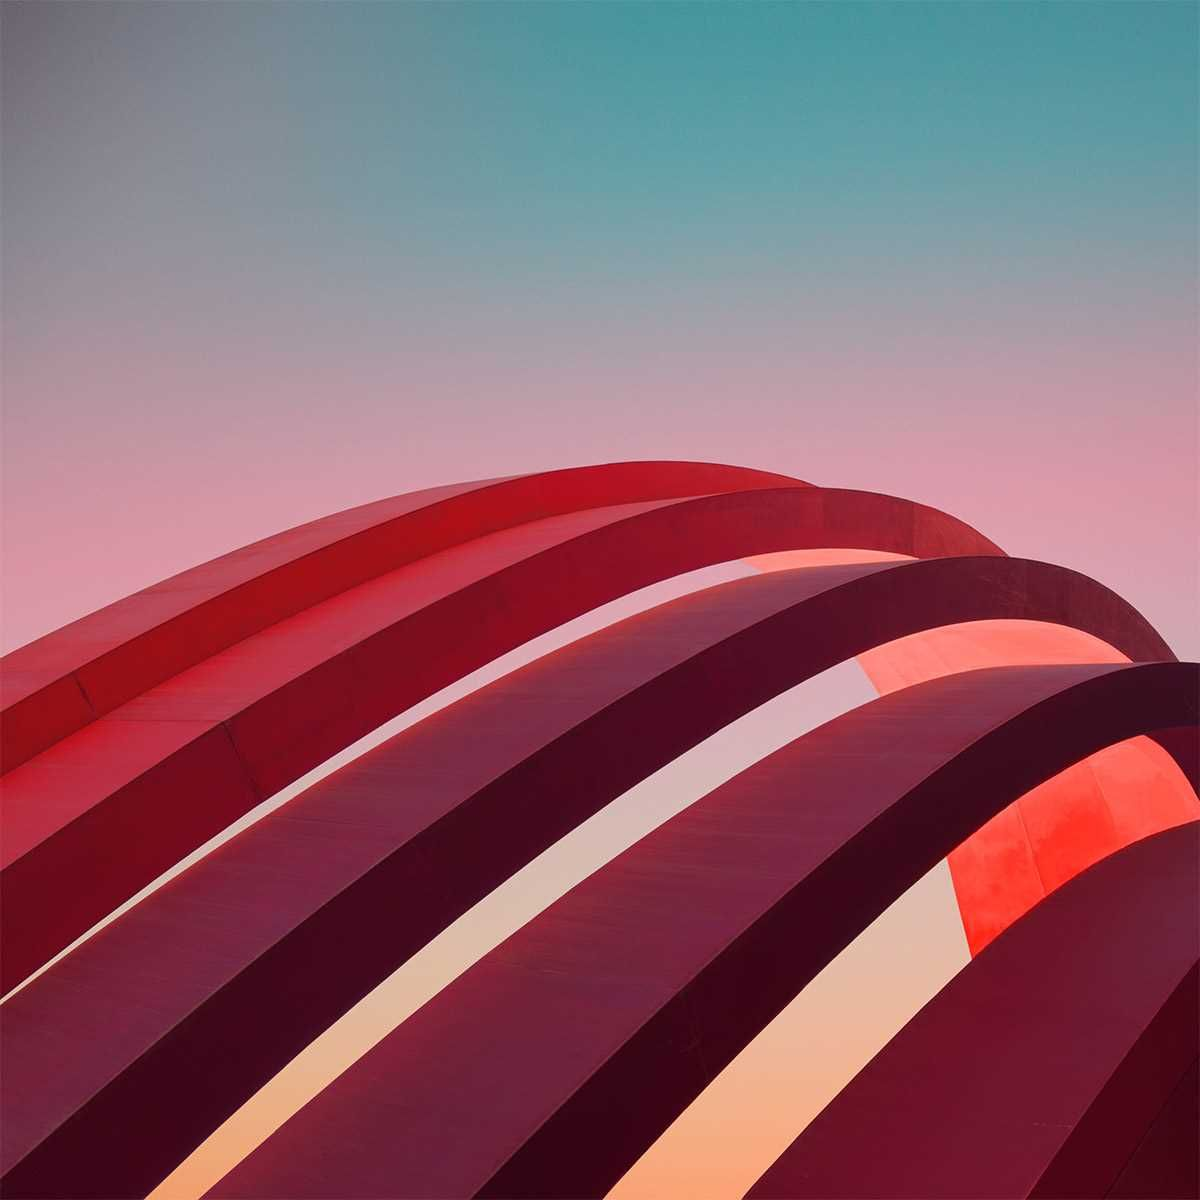 Cyan: Random Architectural Fragments by Øystein Aspelund #inspiration #photography